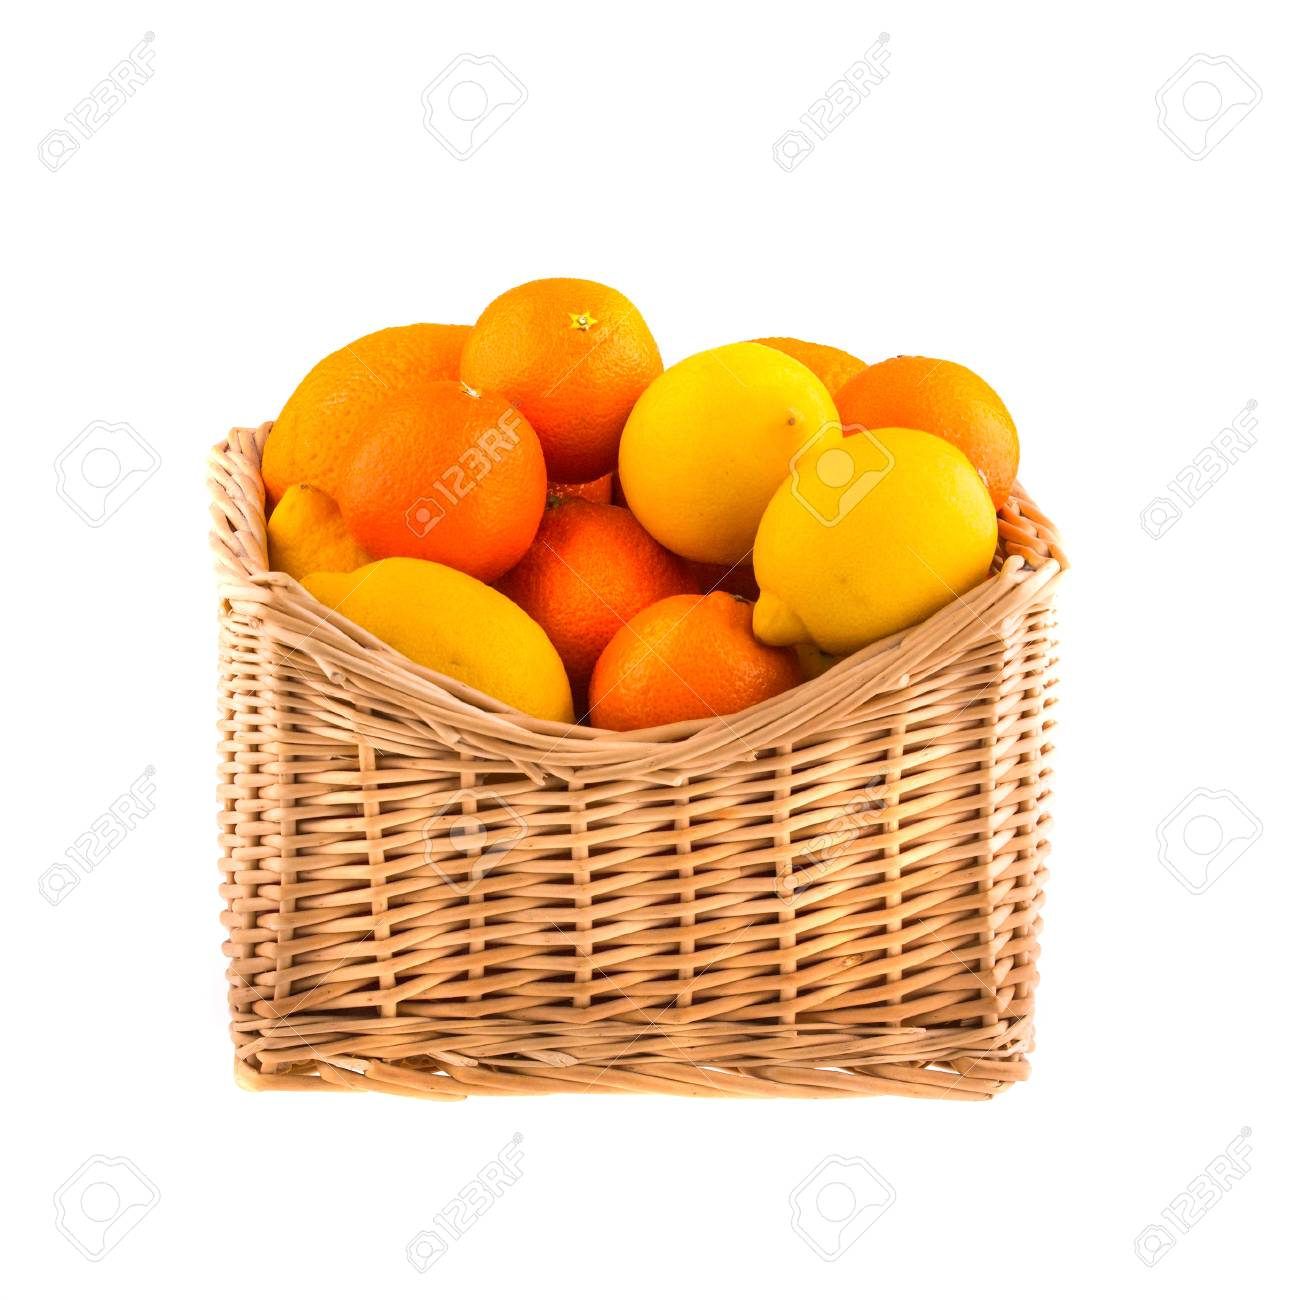 Oranges and lemons in a wooden basket, isolated on white background. Stock Photo - 26568135